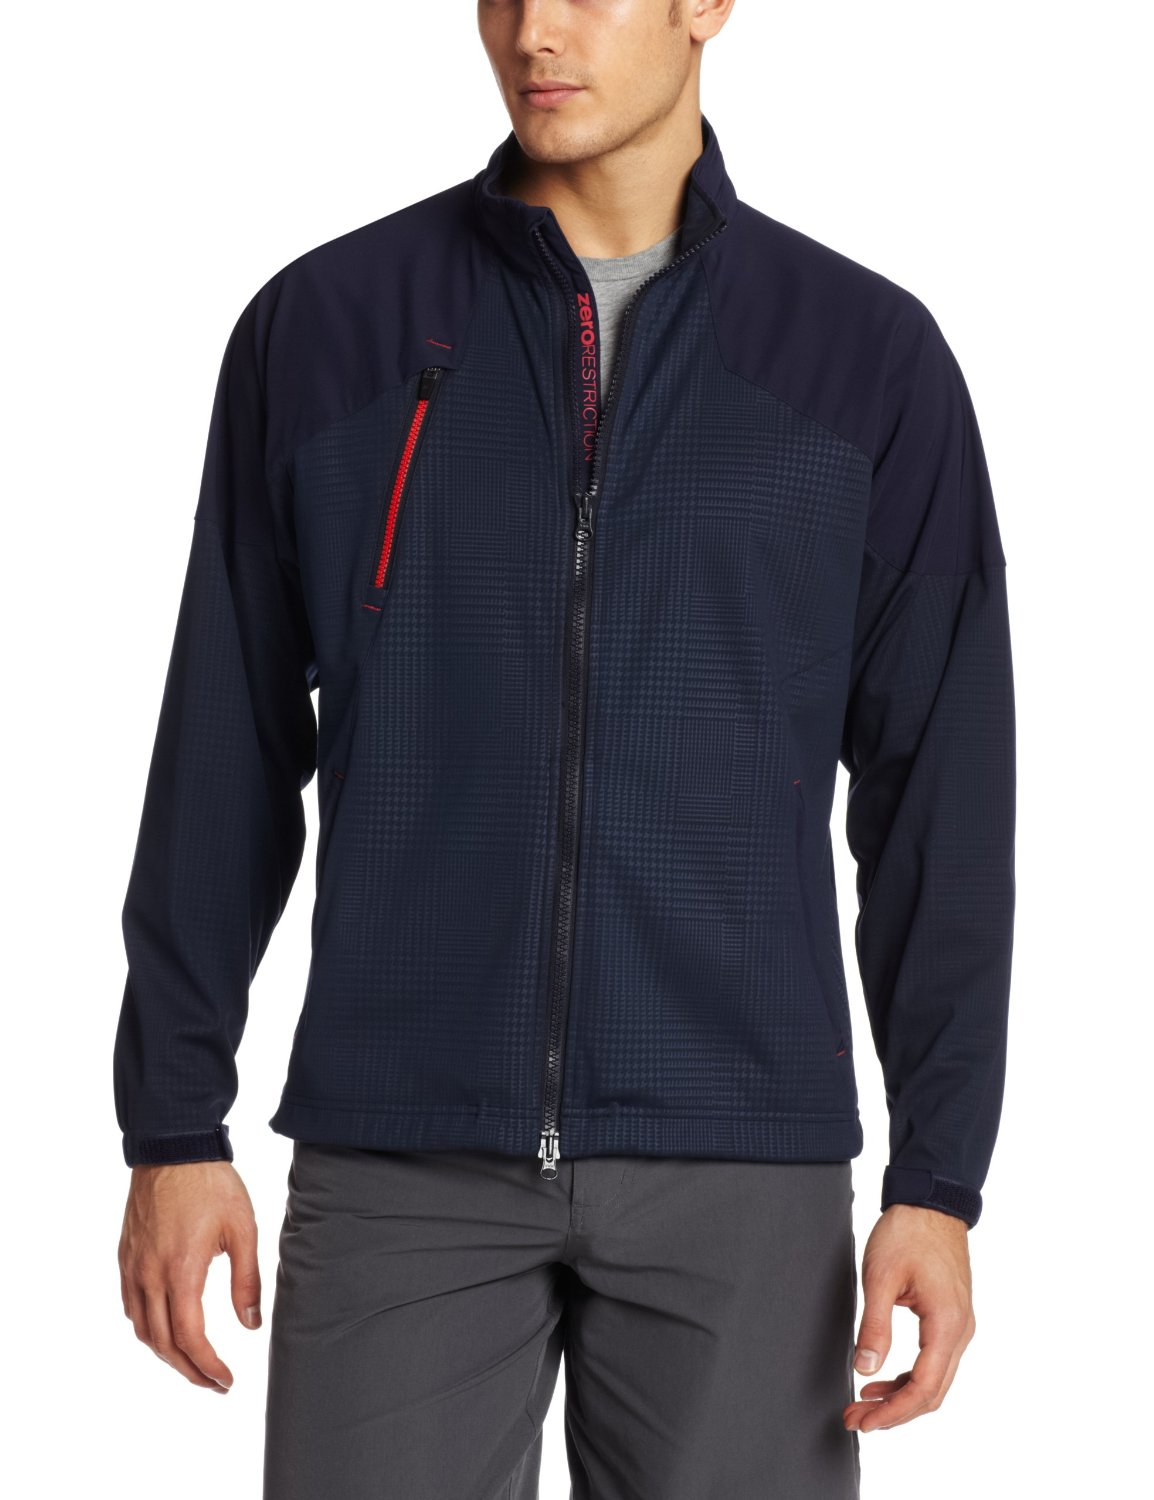 Mens Zero Restriction Glen Covert Golf Jackets